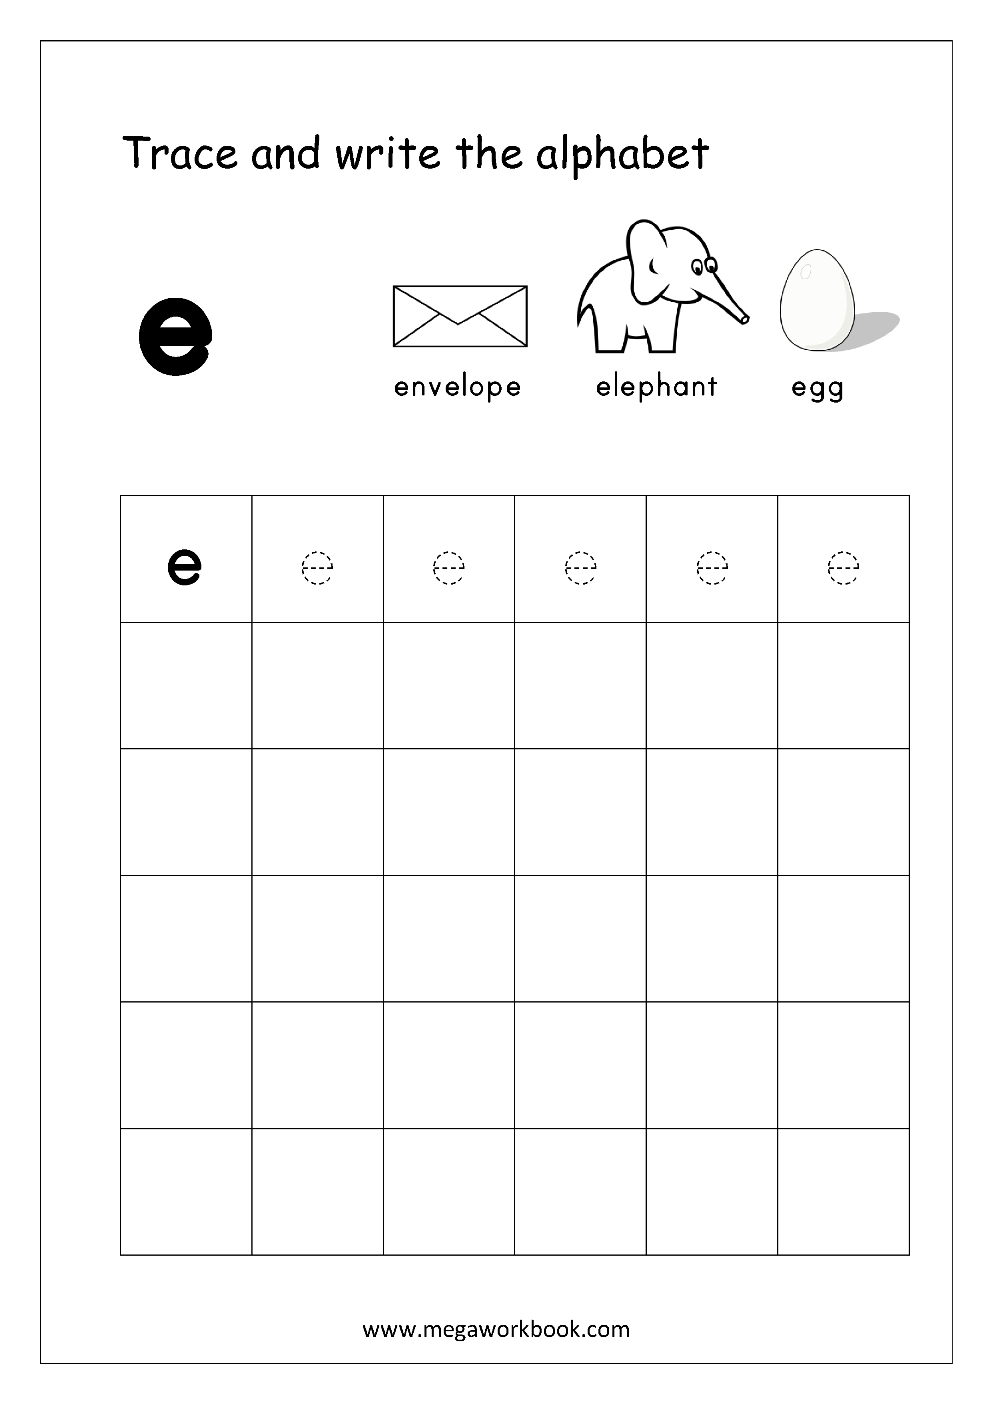 Free English Worksheets - Alphabet Writing (Small Letters) - MegaWorkbook